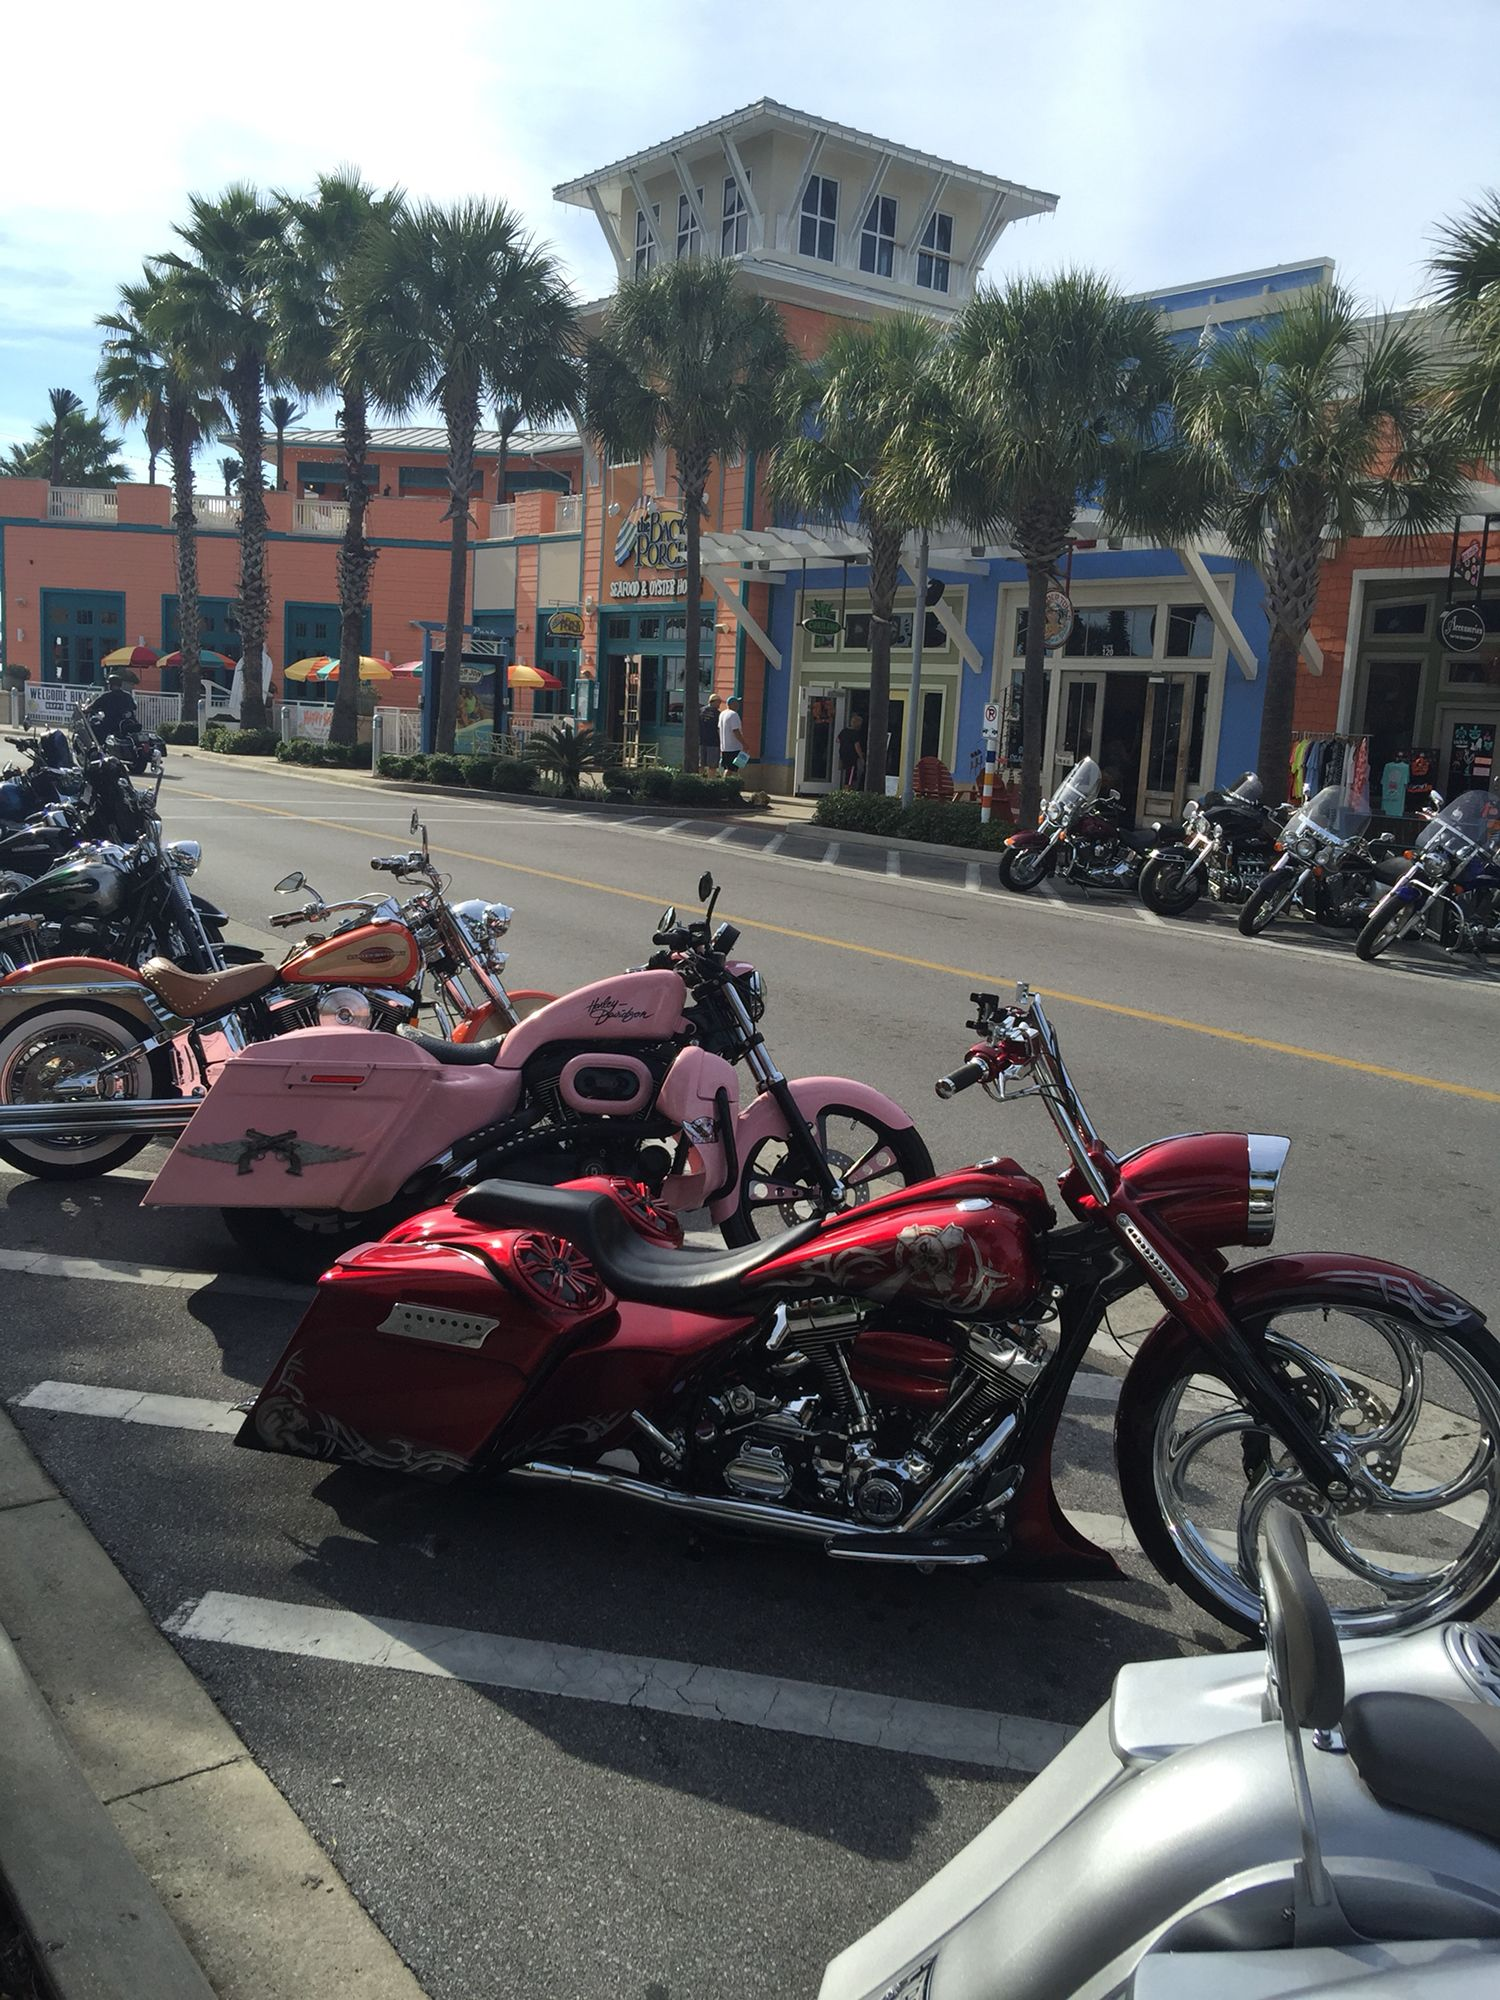 Thunder Beach Bike Rally Fall 2017 Pier Park In Panama City Fl